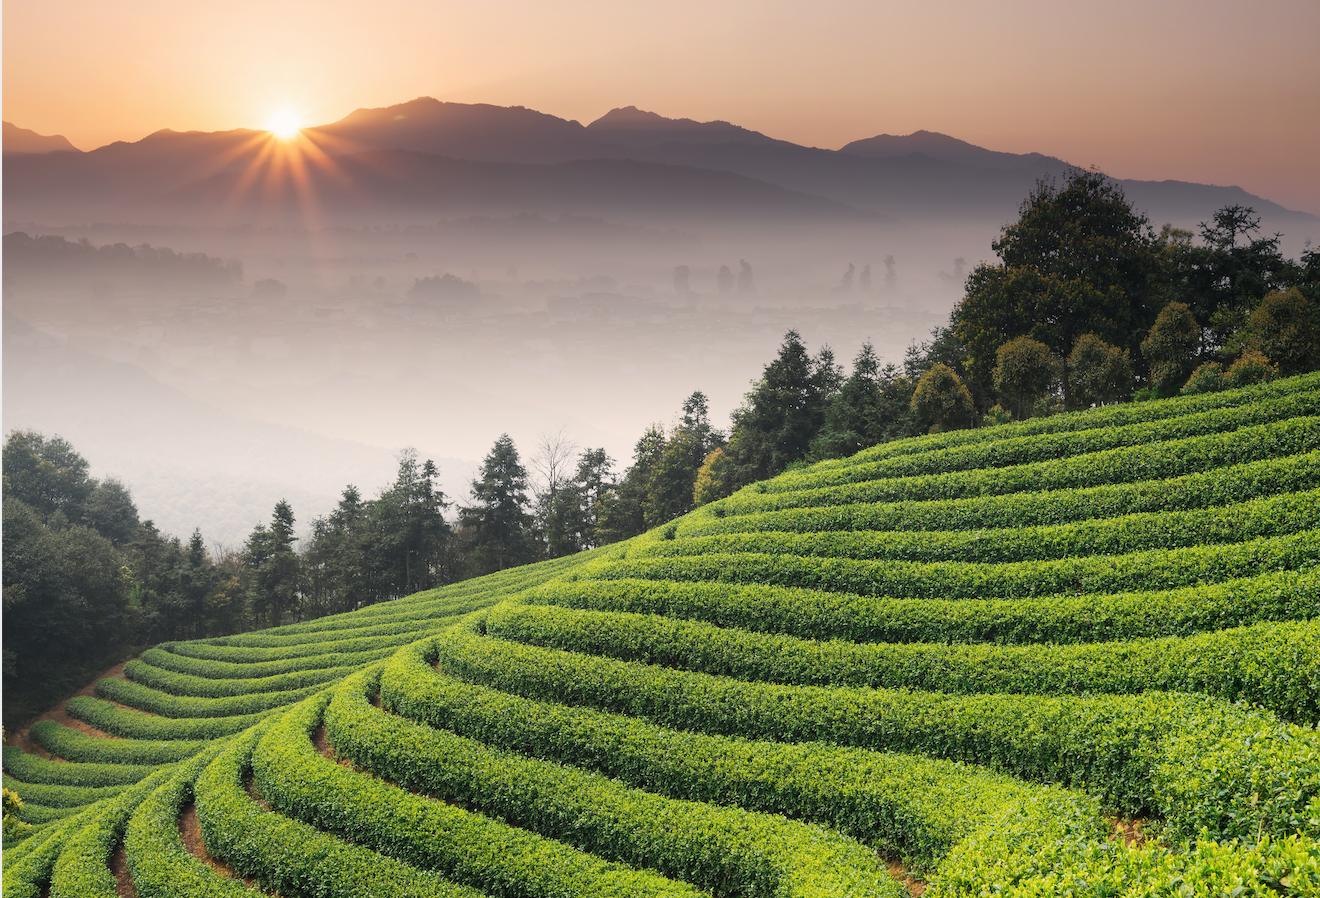 Japanese Tea Farm | Farm Direct Ceremonial Grade Matcha From Japan